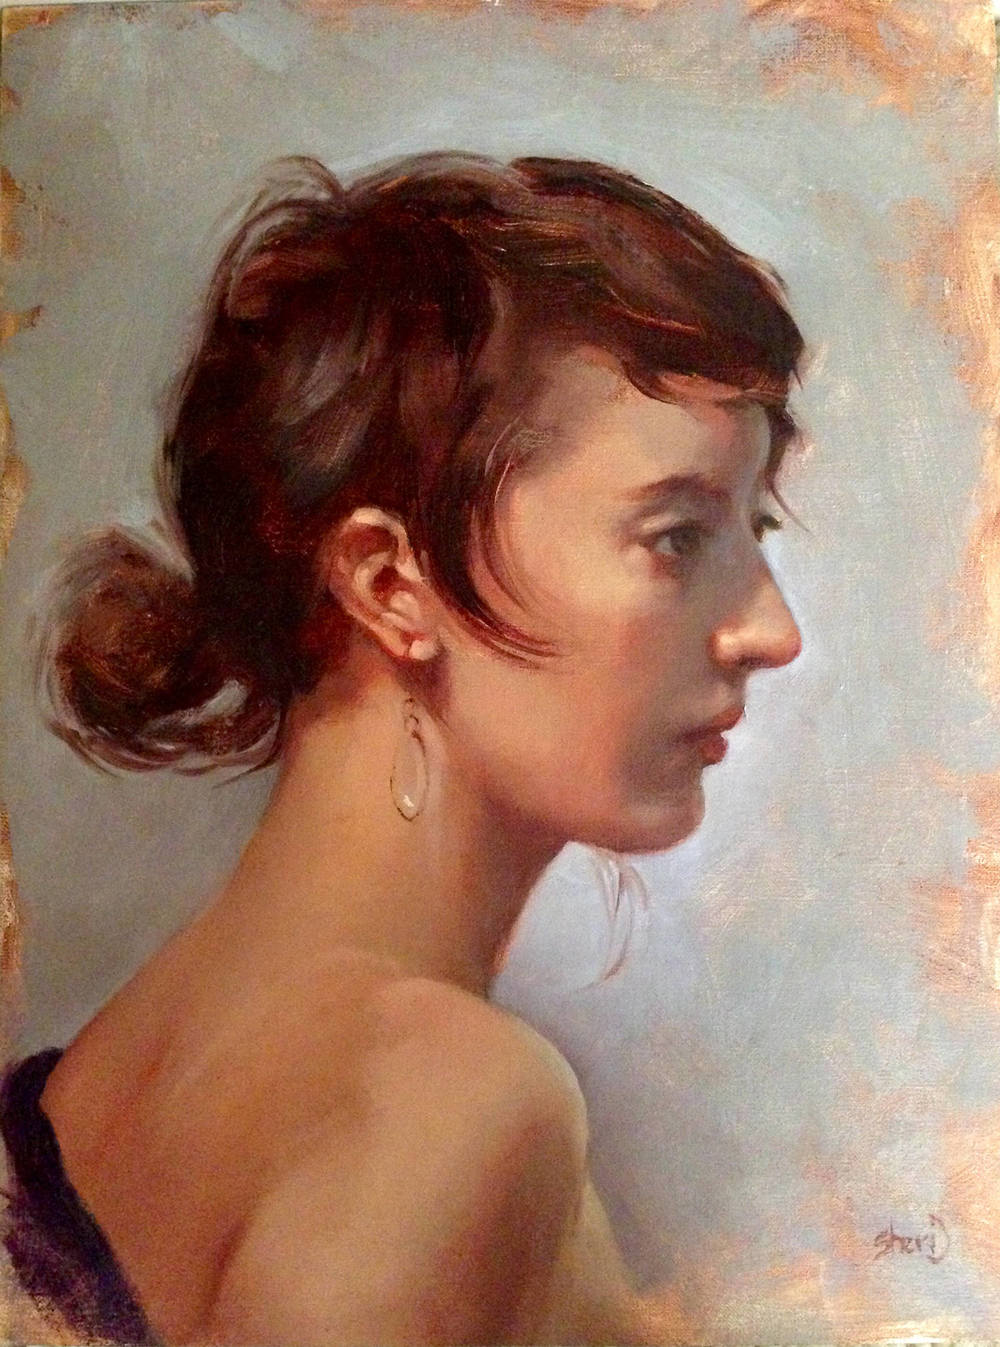 Girl with a Crystal Earring - 12 x 9 - Oil on Linen $980